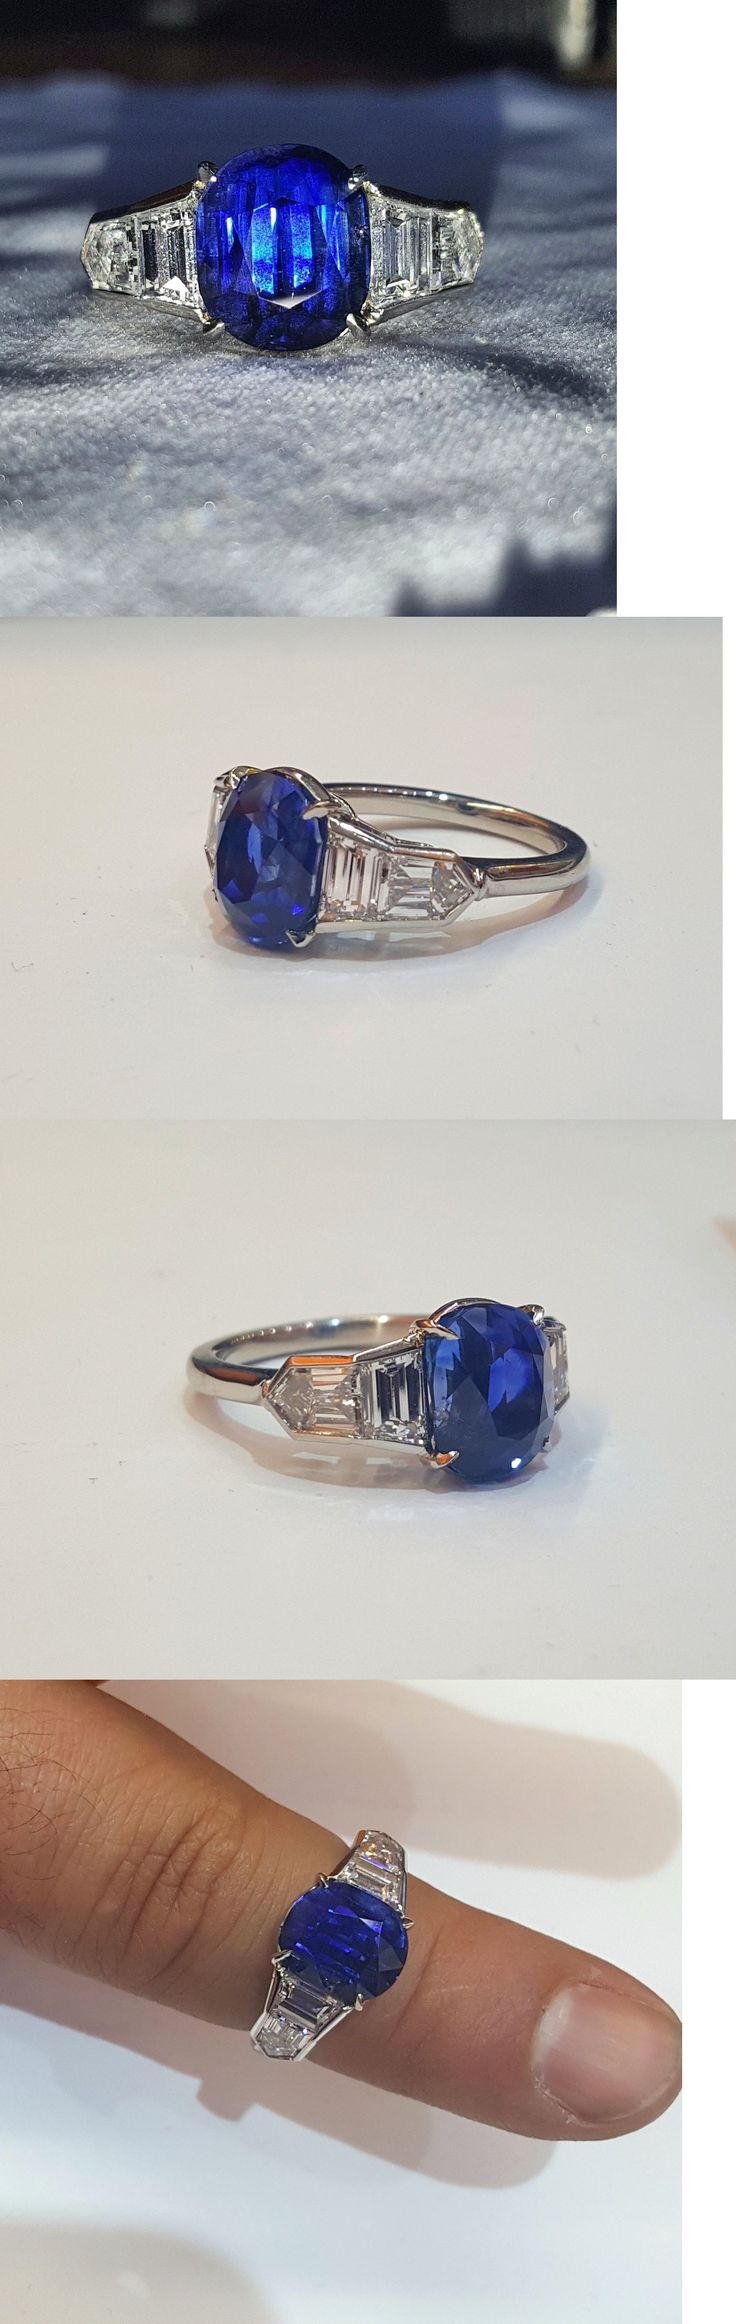 Natural Sapphires 4644: Rare Platinum Ring 7.59Ct. Natural Kashmir Untreated Blue Sapphire Cushion -> BUY IT NOW ONLY: $385000 on eBay!